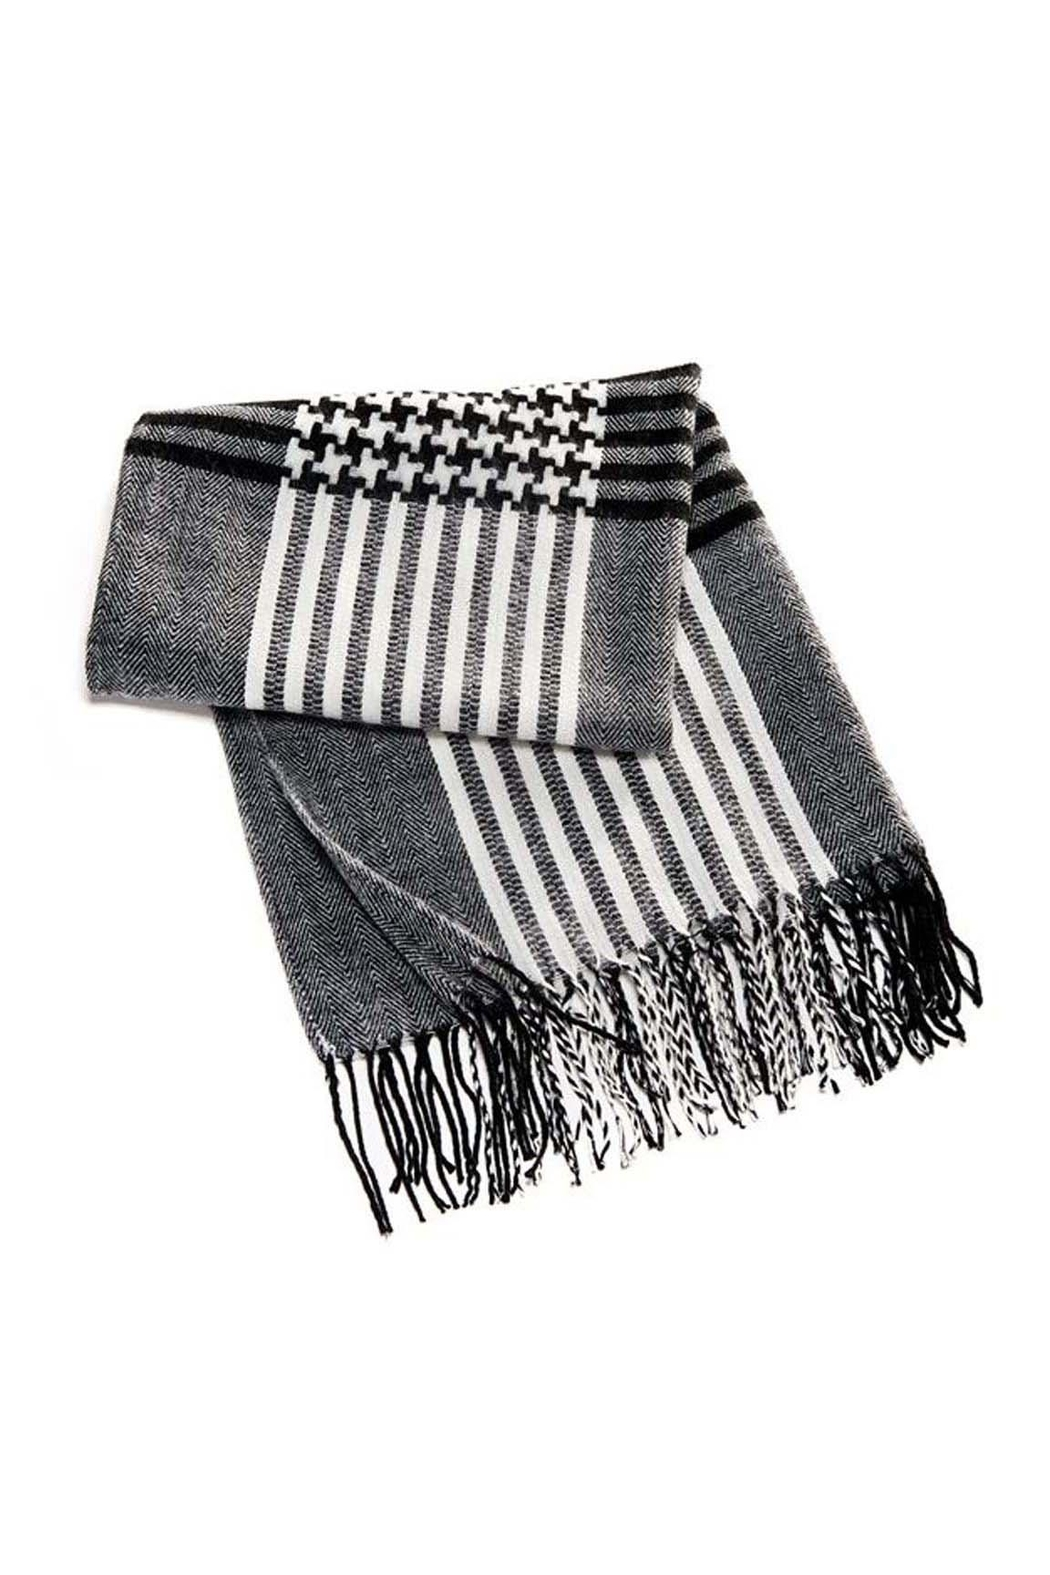 Charlie Paige Houndstooth  Woven Scarf - Front Full Image